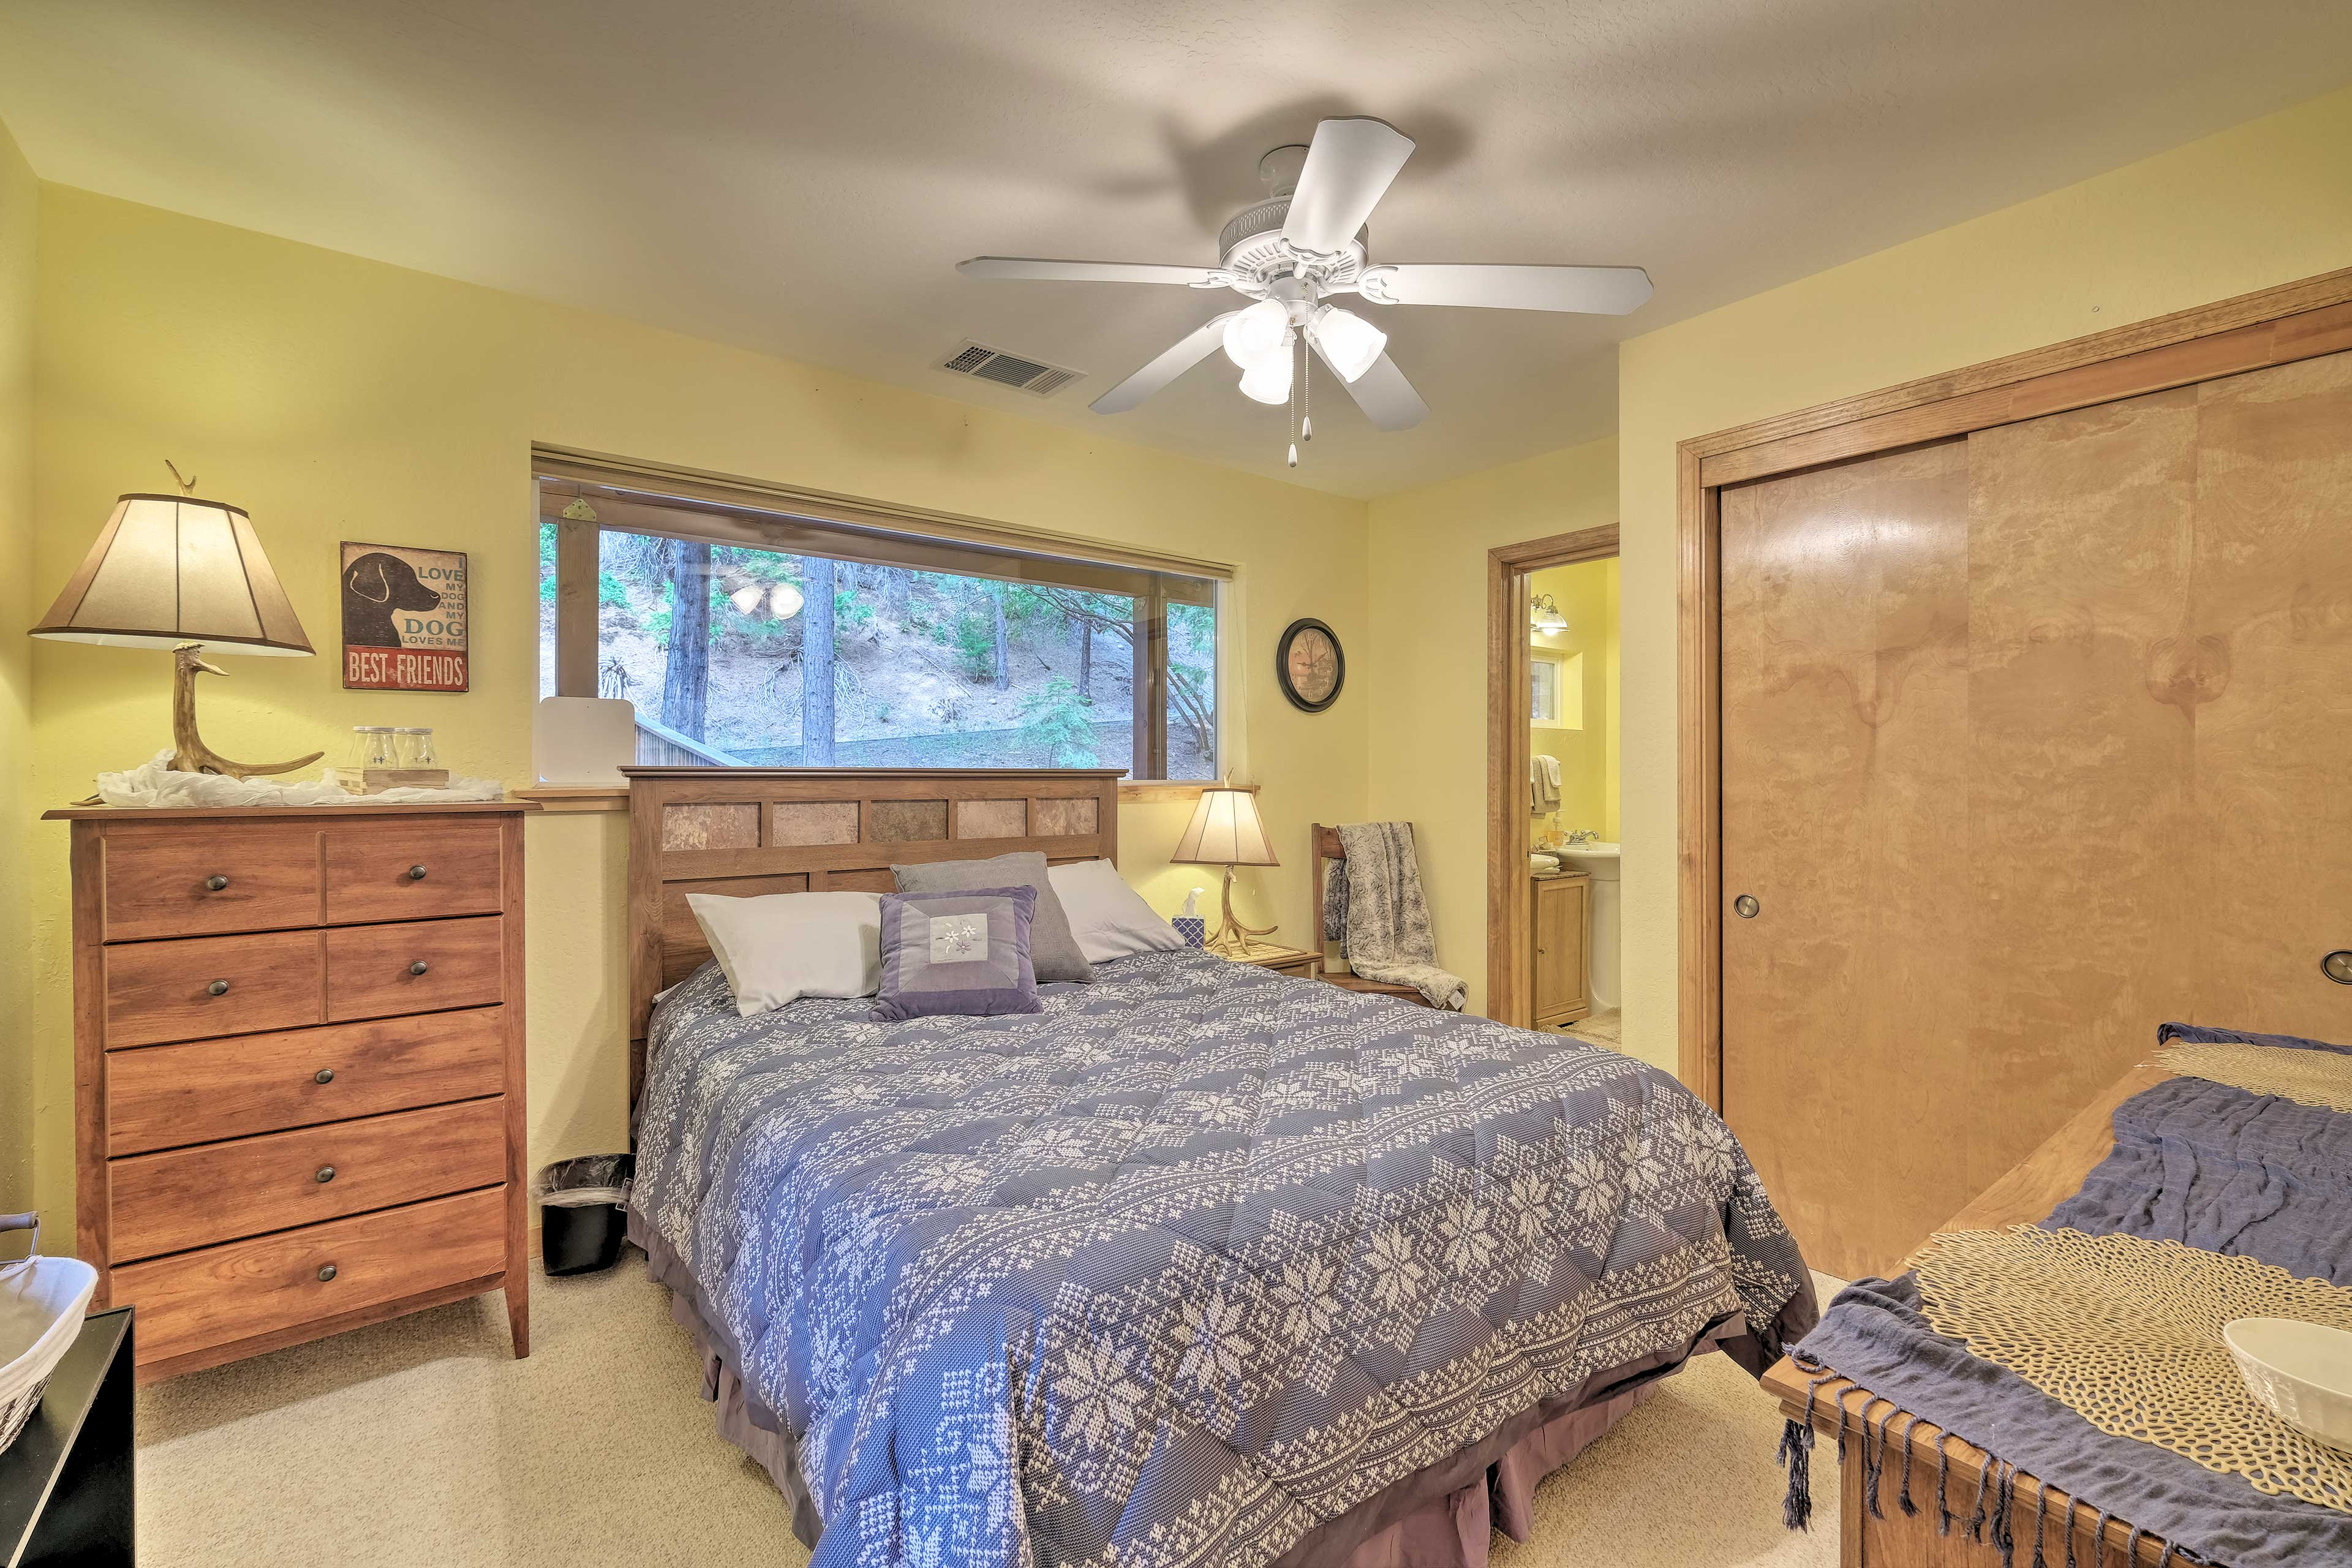 The 2nd bedroom includes a queen bed for 2.